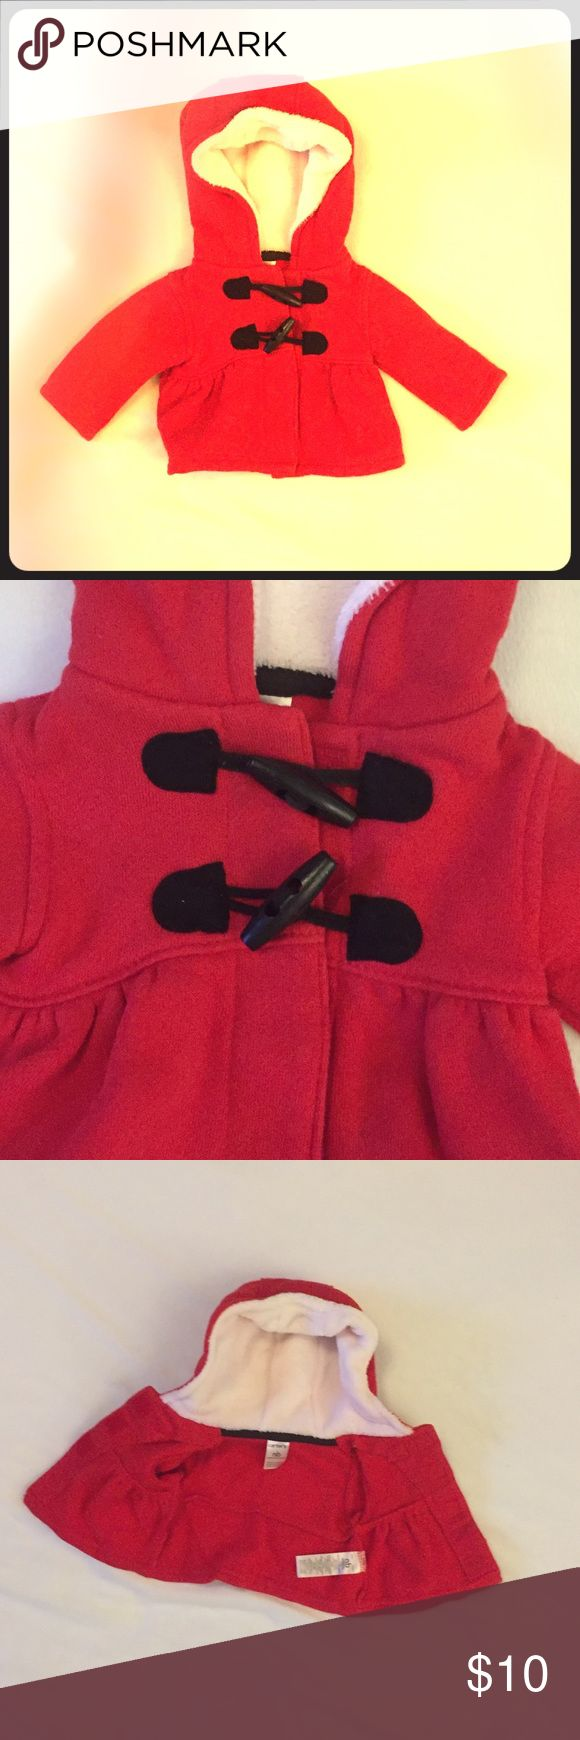 Cozy Red Newborn Coat with Black Toggle Buttons She will be warm all winter in this cozy coat featuring a toggle button design and a warm lined hood.   Your little girl will be absolutely adorable wearing this little coat. The pictures do not due this little coat justice. You will love putting your little one in this coat. Carter's Jackets & Coats Pea Coats